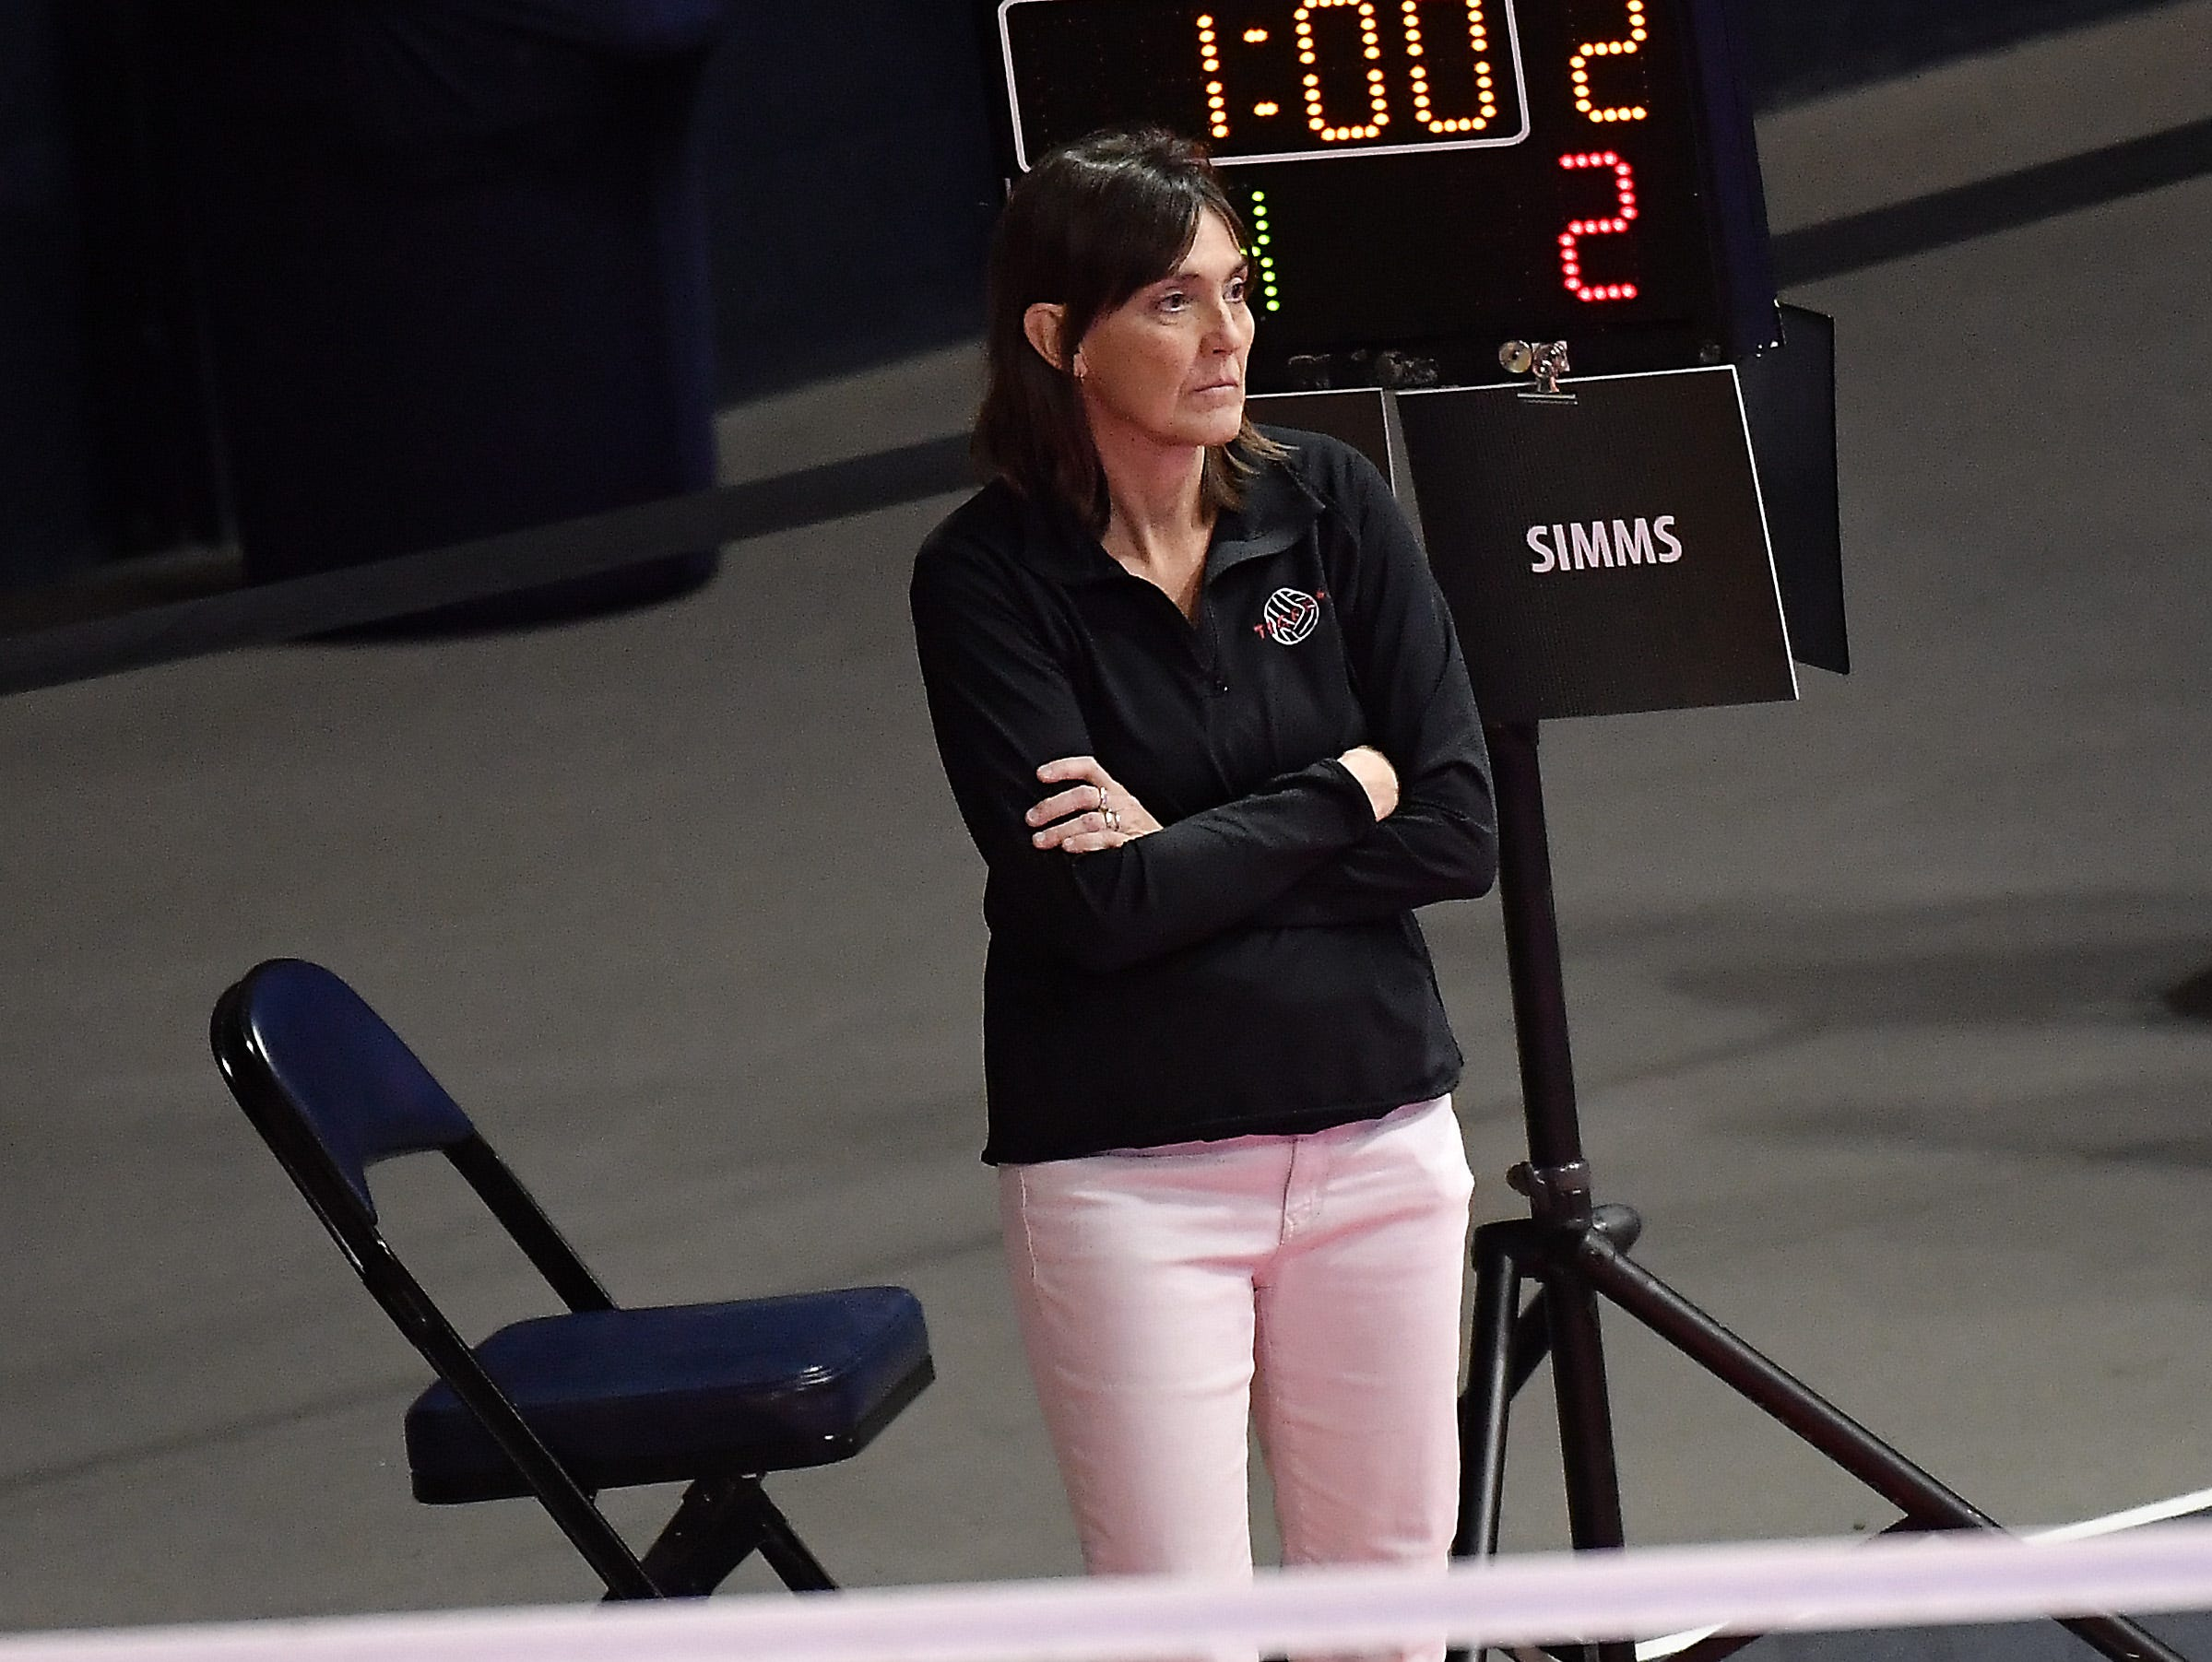 Simms head coach Molly Pasma on the sidelines of the Tigers' match with Bridger at the All-Class State Volleyball Tournament at the Brick Breeden Fieldhouse in Bozeman.